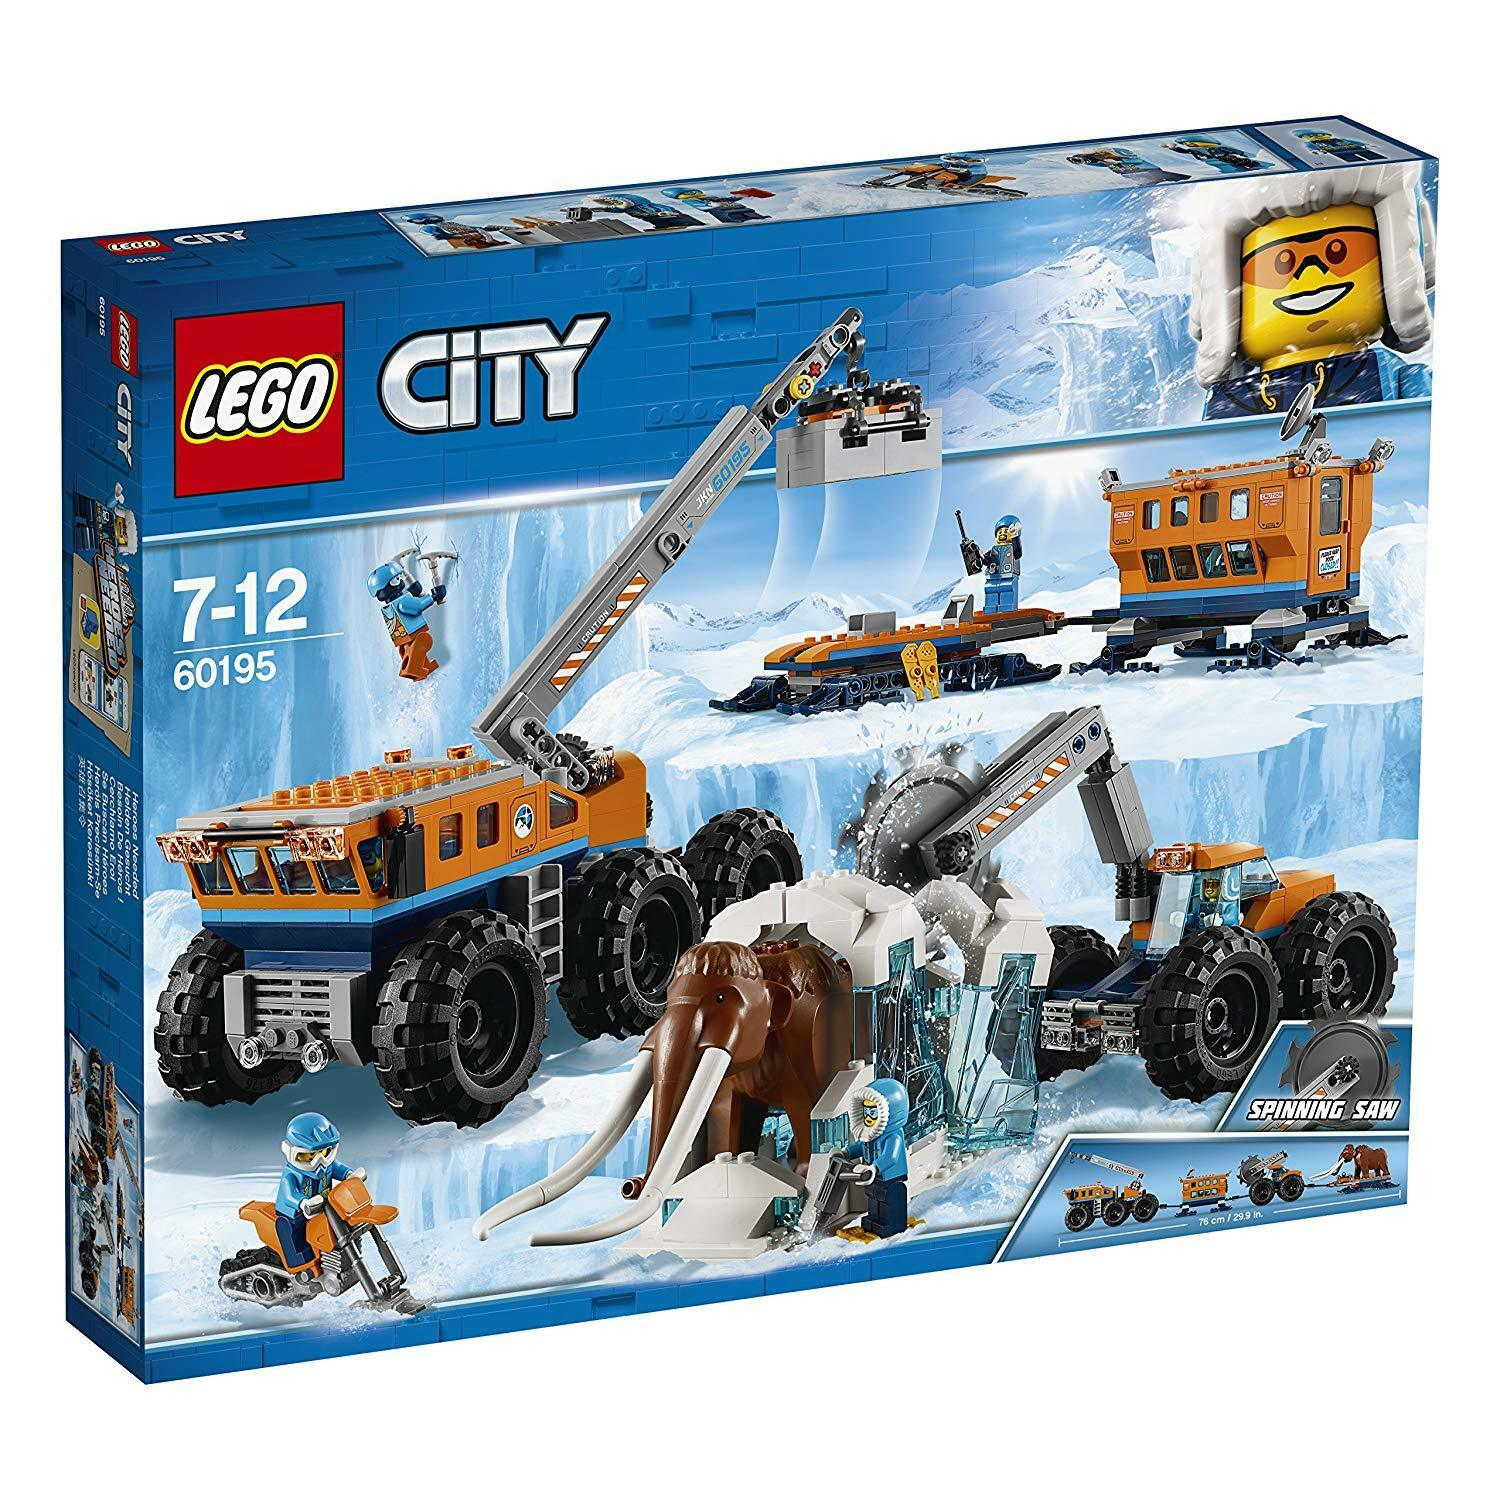 LEGO City 60195: Arctic Mobile Exploration Base - Brand New